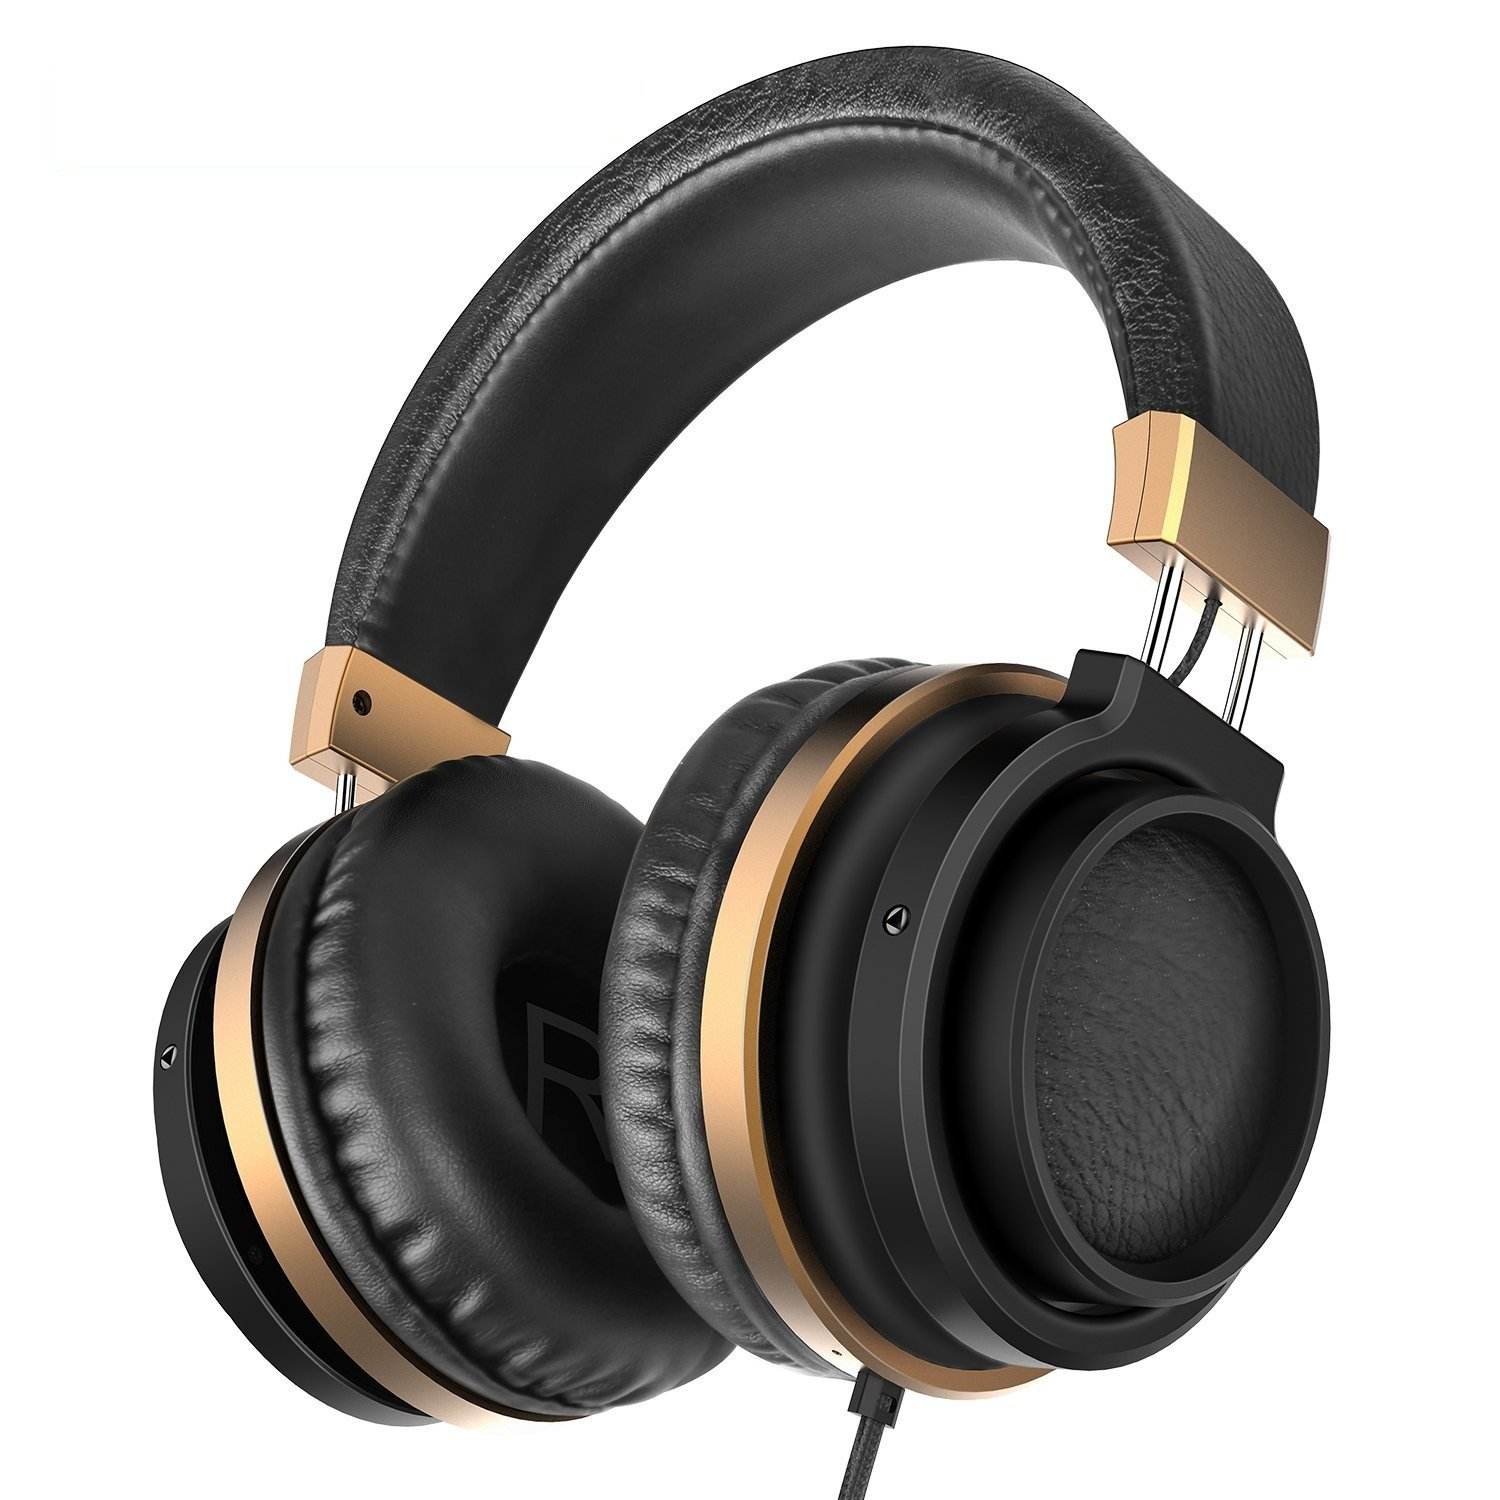 Ailihen MX-06 Over Ear Headphones with Microphone and Volume Control Bass Stereo Adjustable Headsets for IOS Android Smartphones Laptop Tablets Computer MP3/4 (Black Golden)